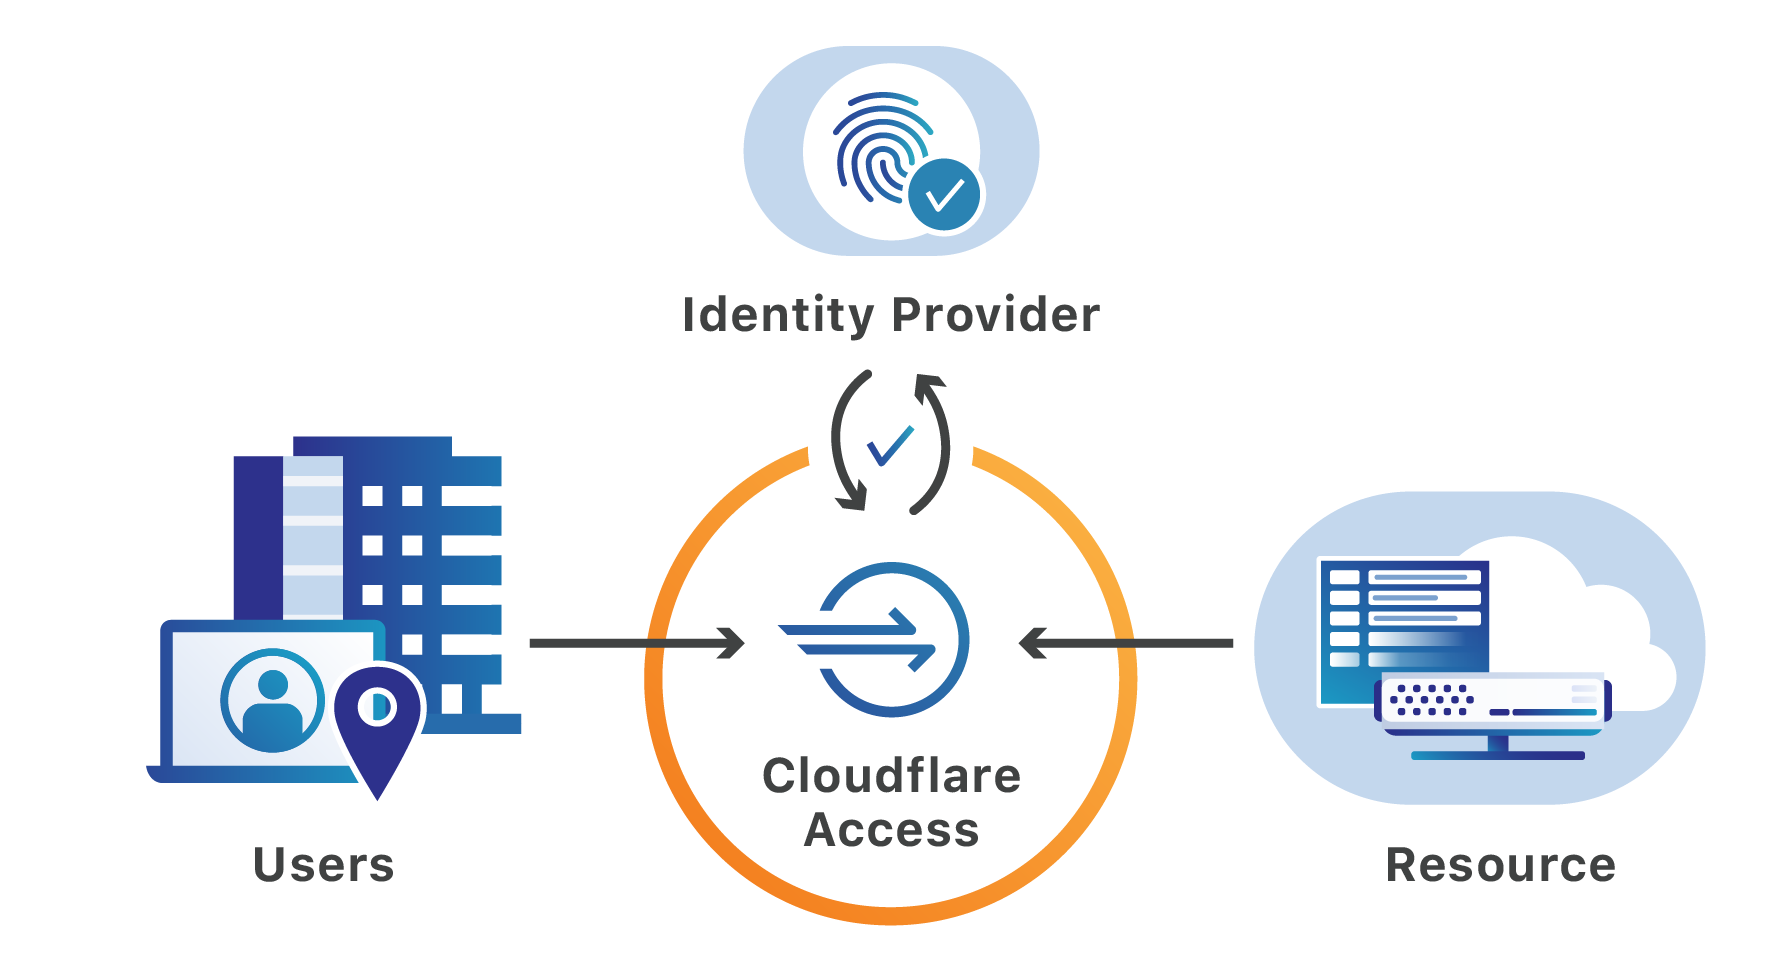 Helping mitigate the Citrix NetScaler CVE with Cloudflare Access